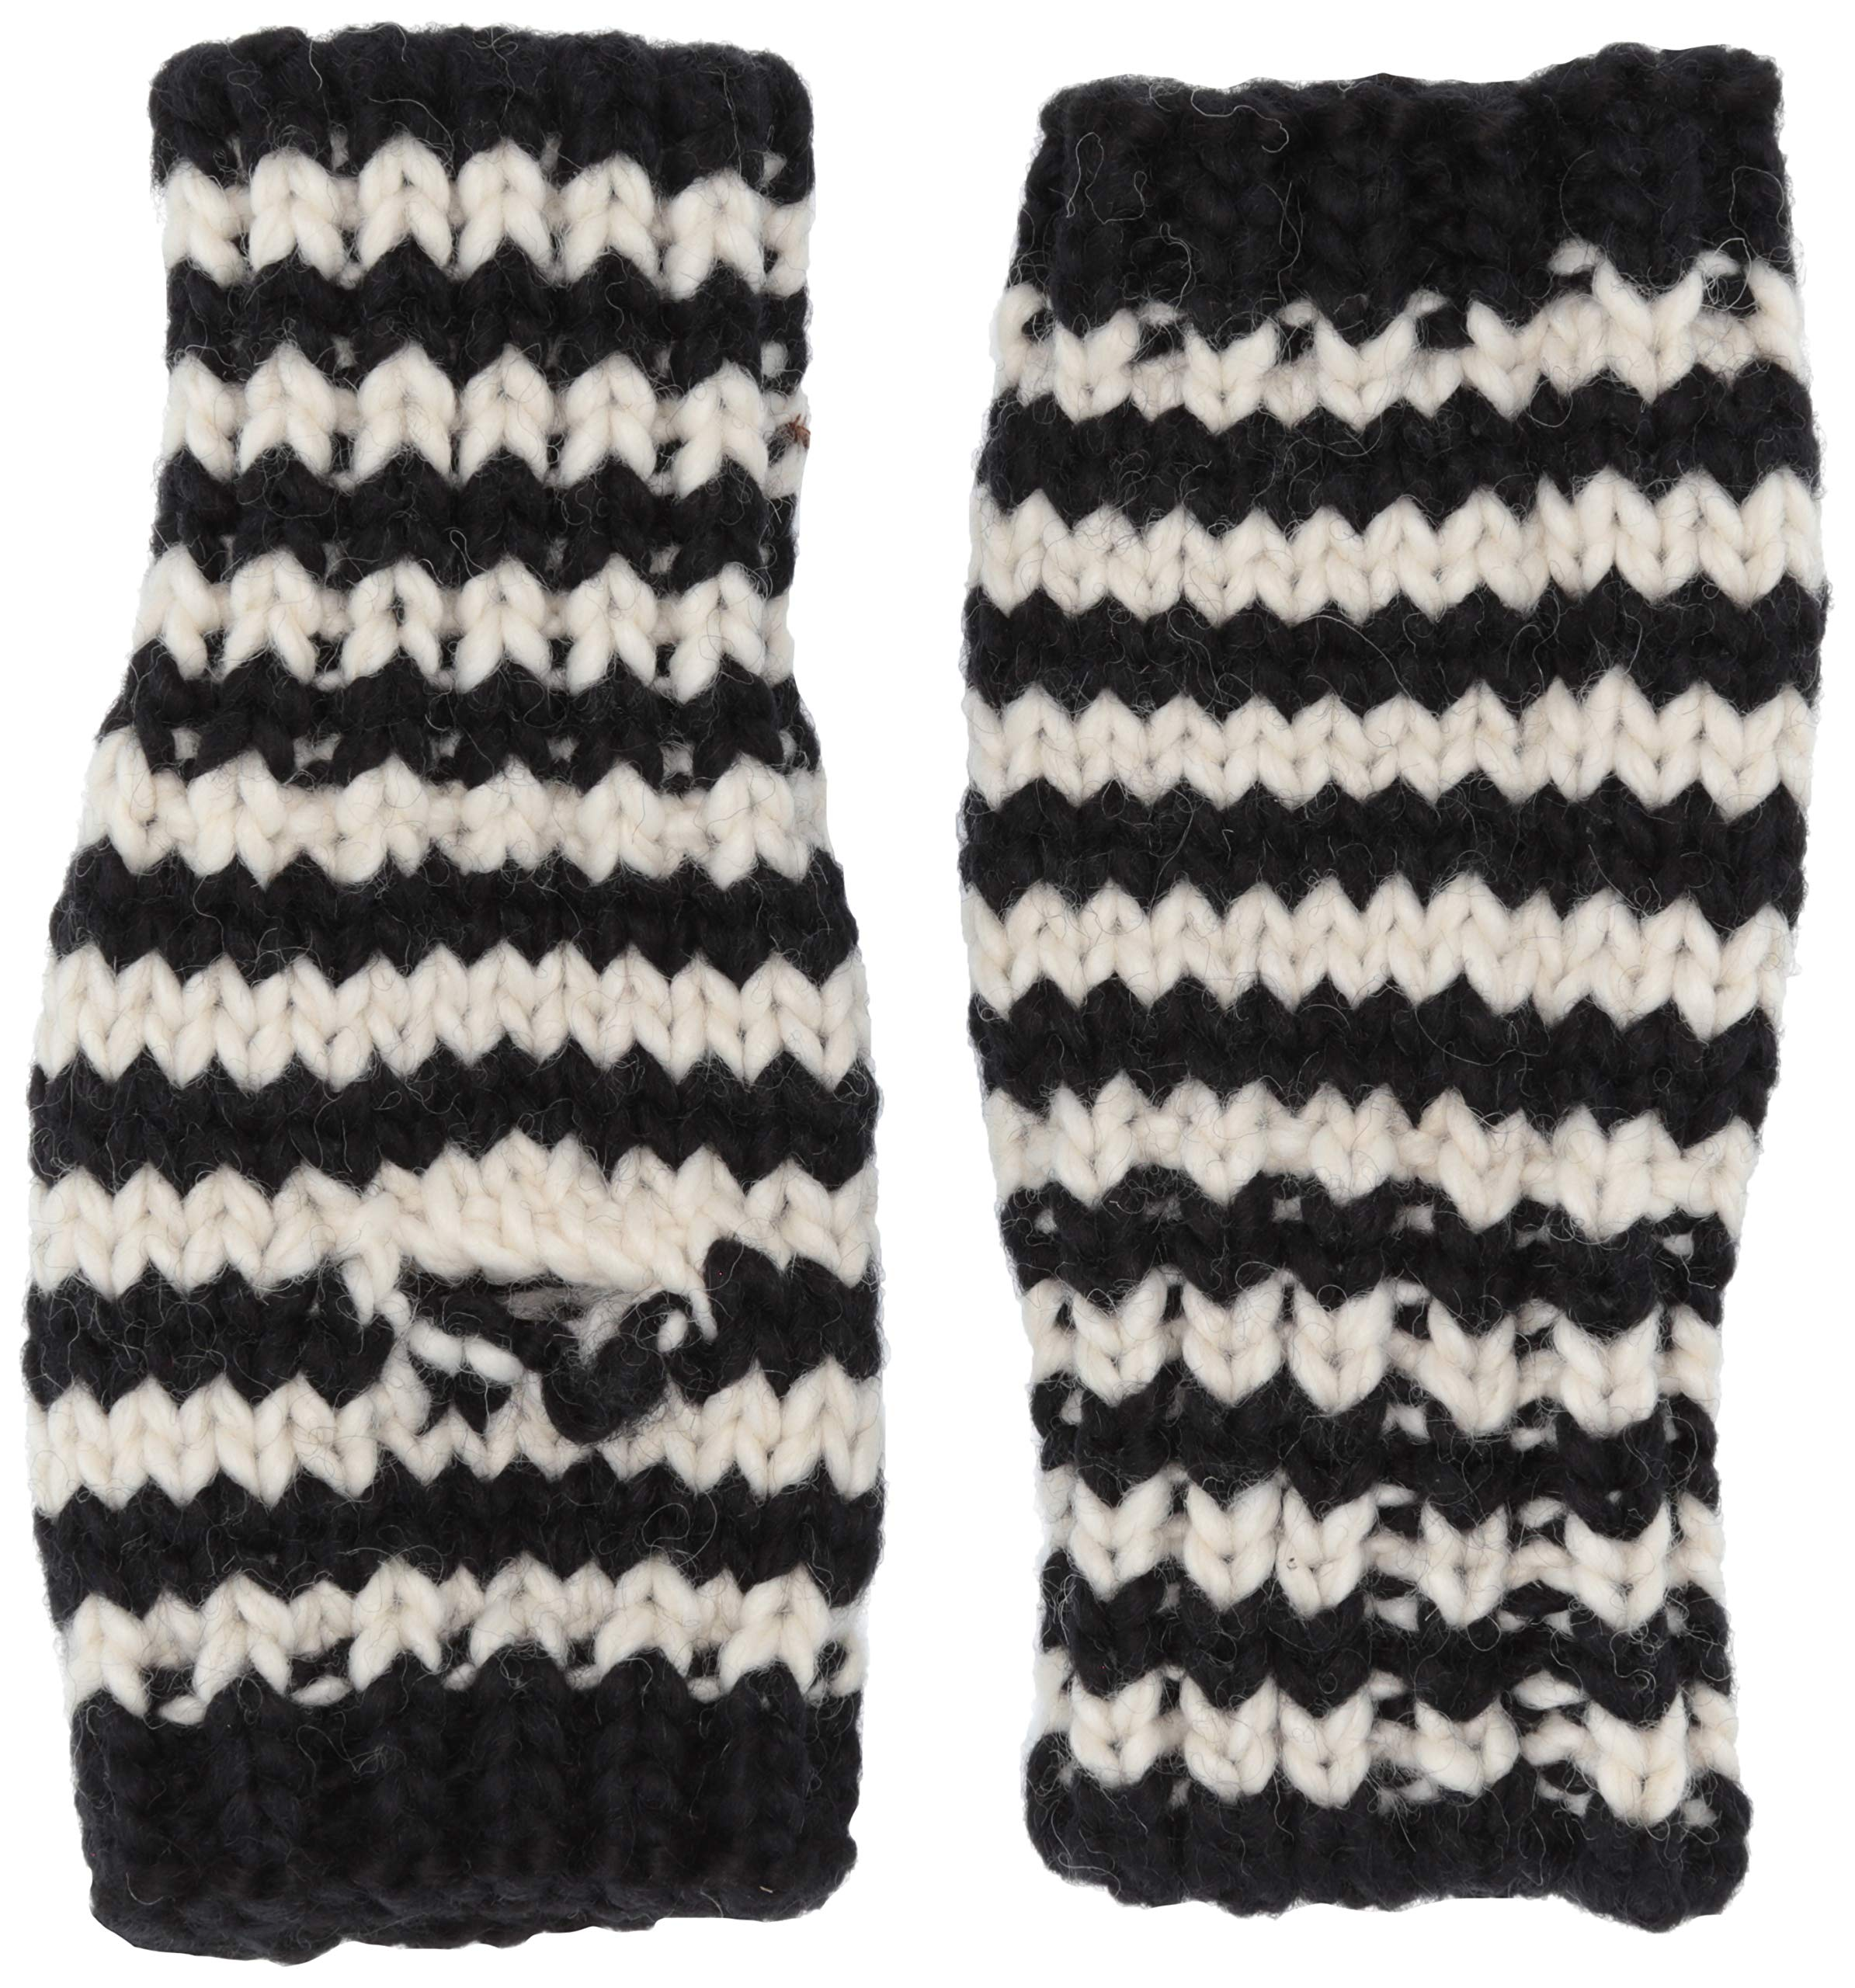 Sweet Turns Women's Lola Wristlets, Black, One Size